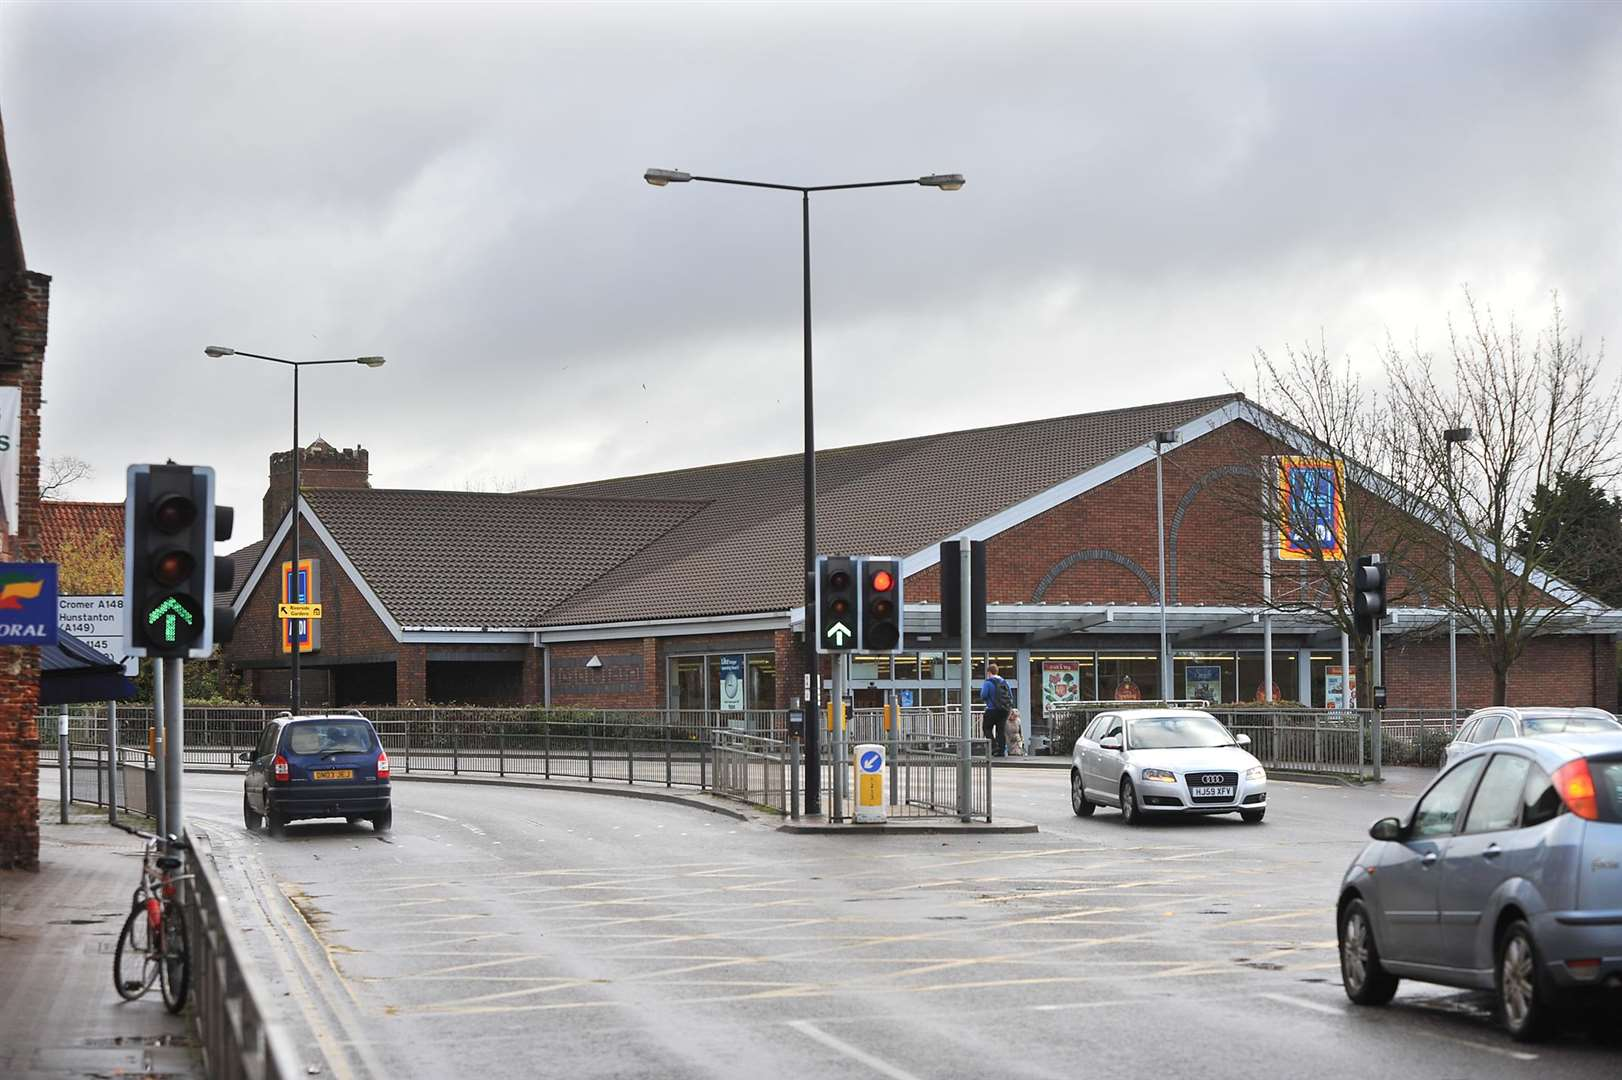 Aldi is one of the chains affected by the product recall